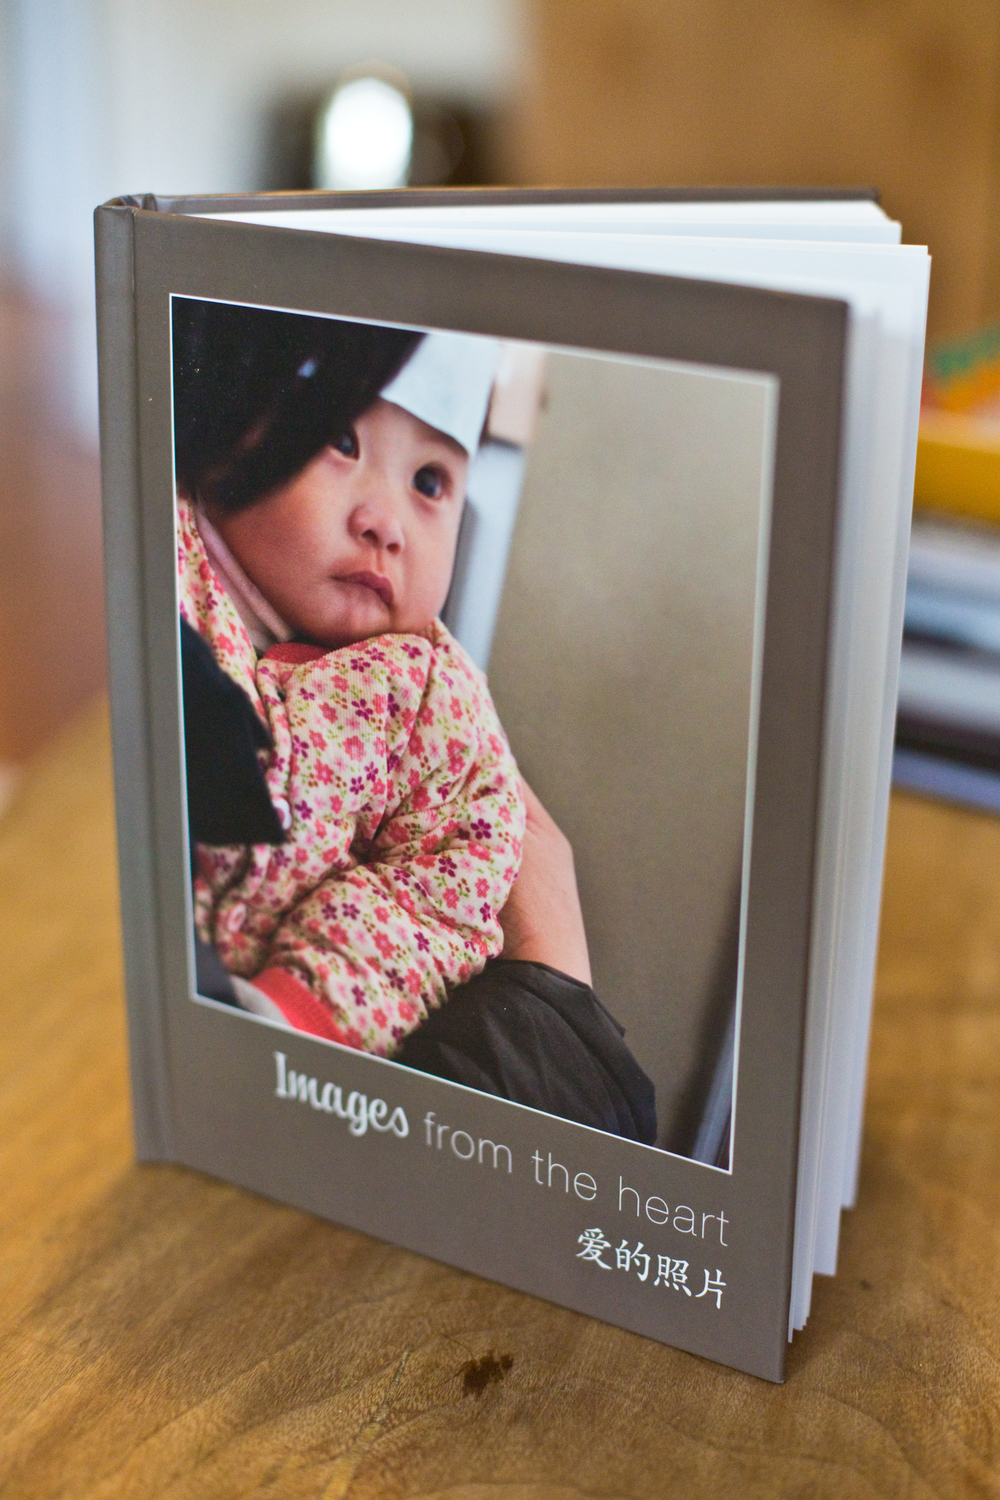 Images from the Heart book cover